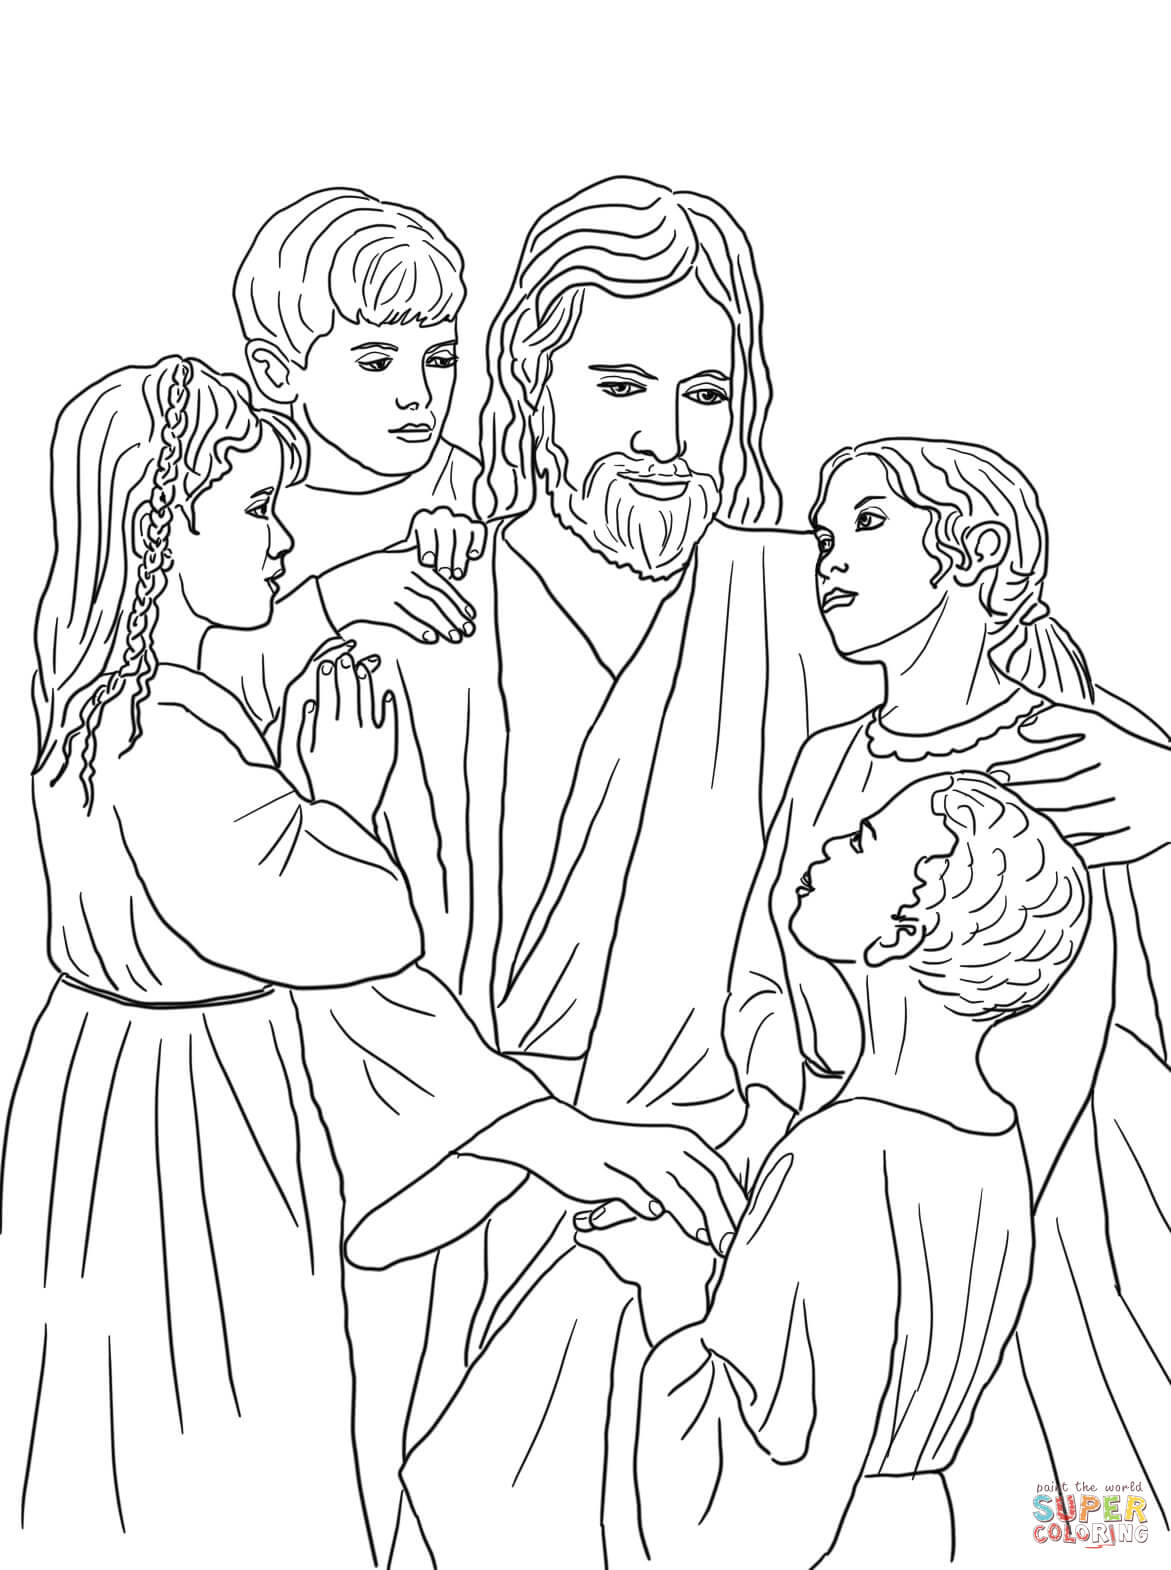 Coloring Pages Jesus And The Children Coloring Pages jesus loves the little children coloring pages az all of world page